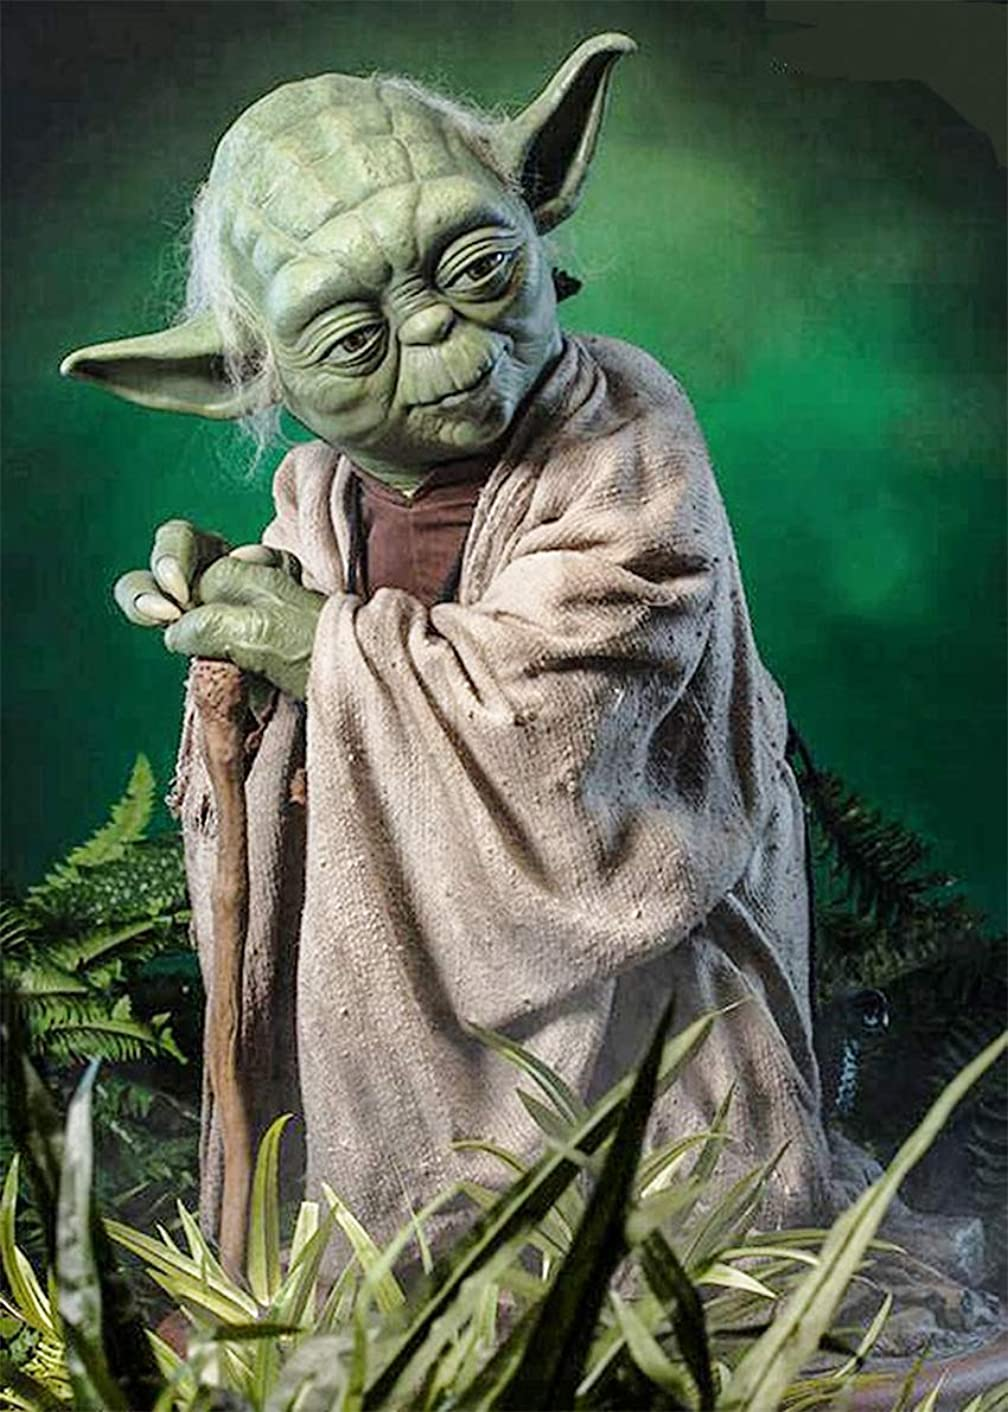 Star Wars Full Drill Diamond Painting 5D DIY Diamond Embroidery Cross Stitch Crystal Rhinestone Art Craft Movie Pictures Mosaic Painting Home Wall Decoration,Master Yoda C (20X28inch/50X70cm)